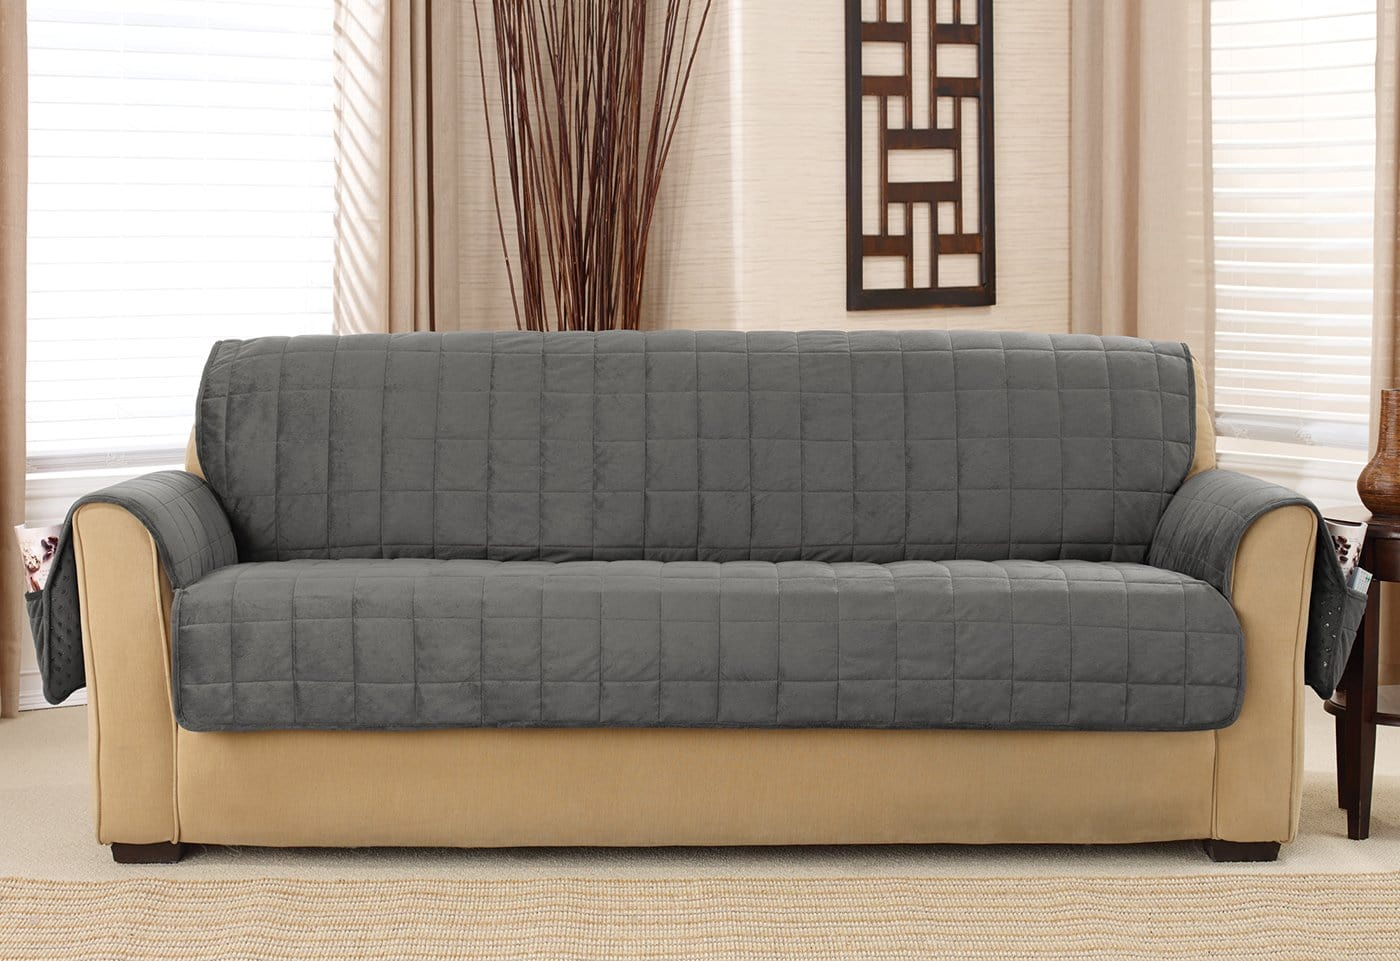 Deep Pile Velvet Furniture Sofa Covers - Sofa / Carbon Gray